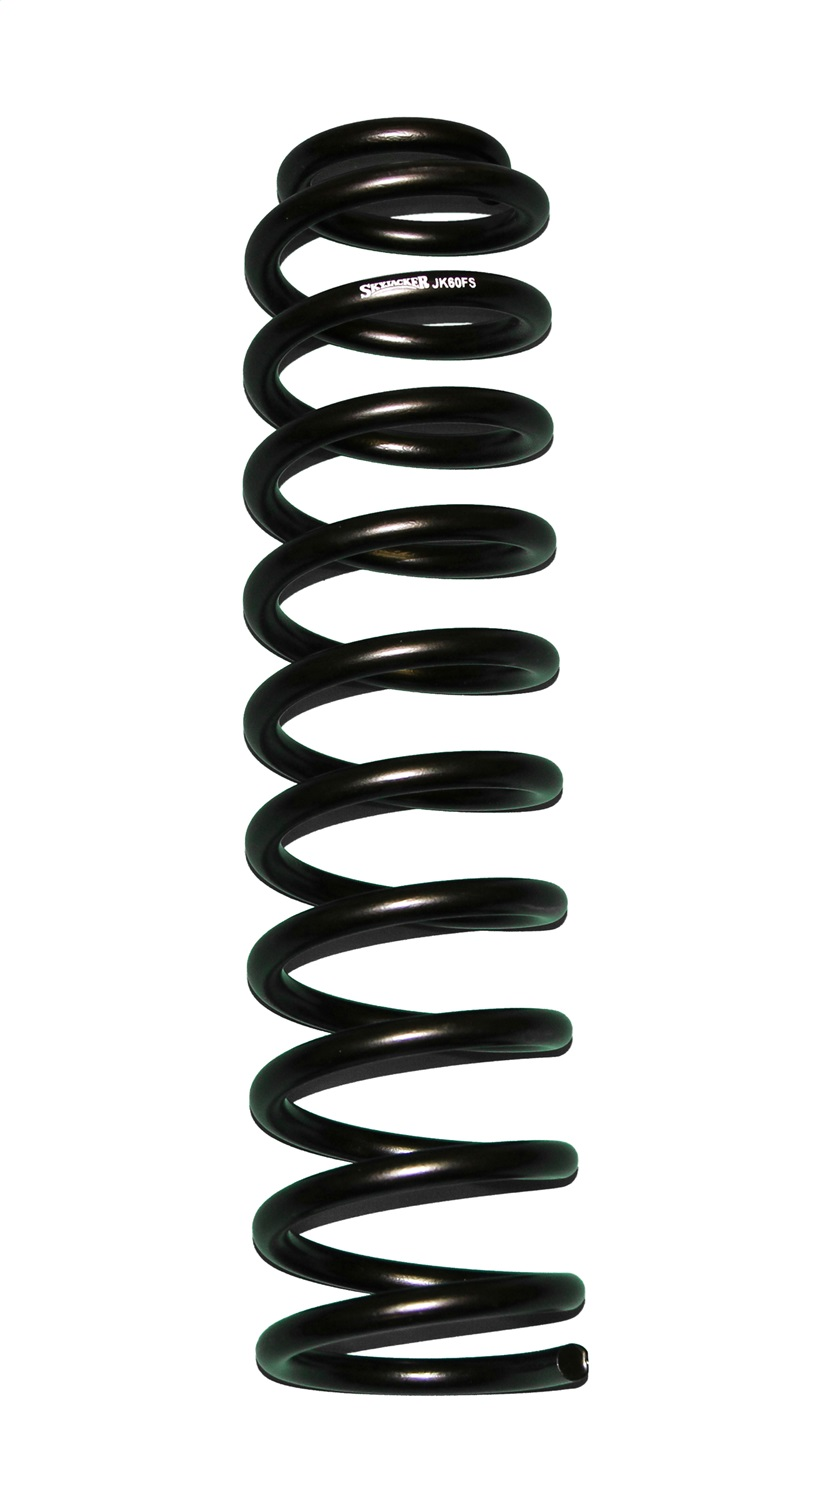 Skyjacker JK60F - Skyjacker Softride Coil Springs